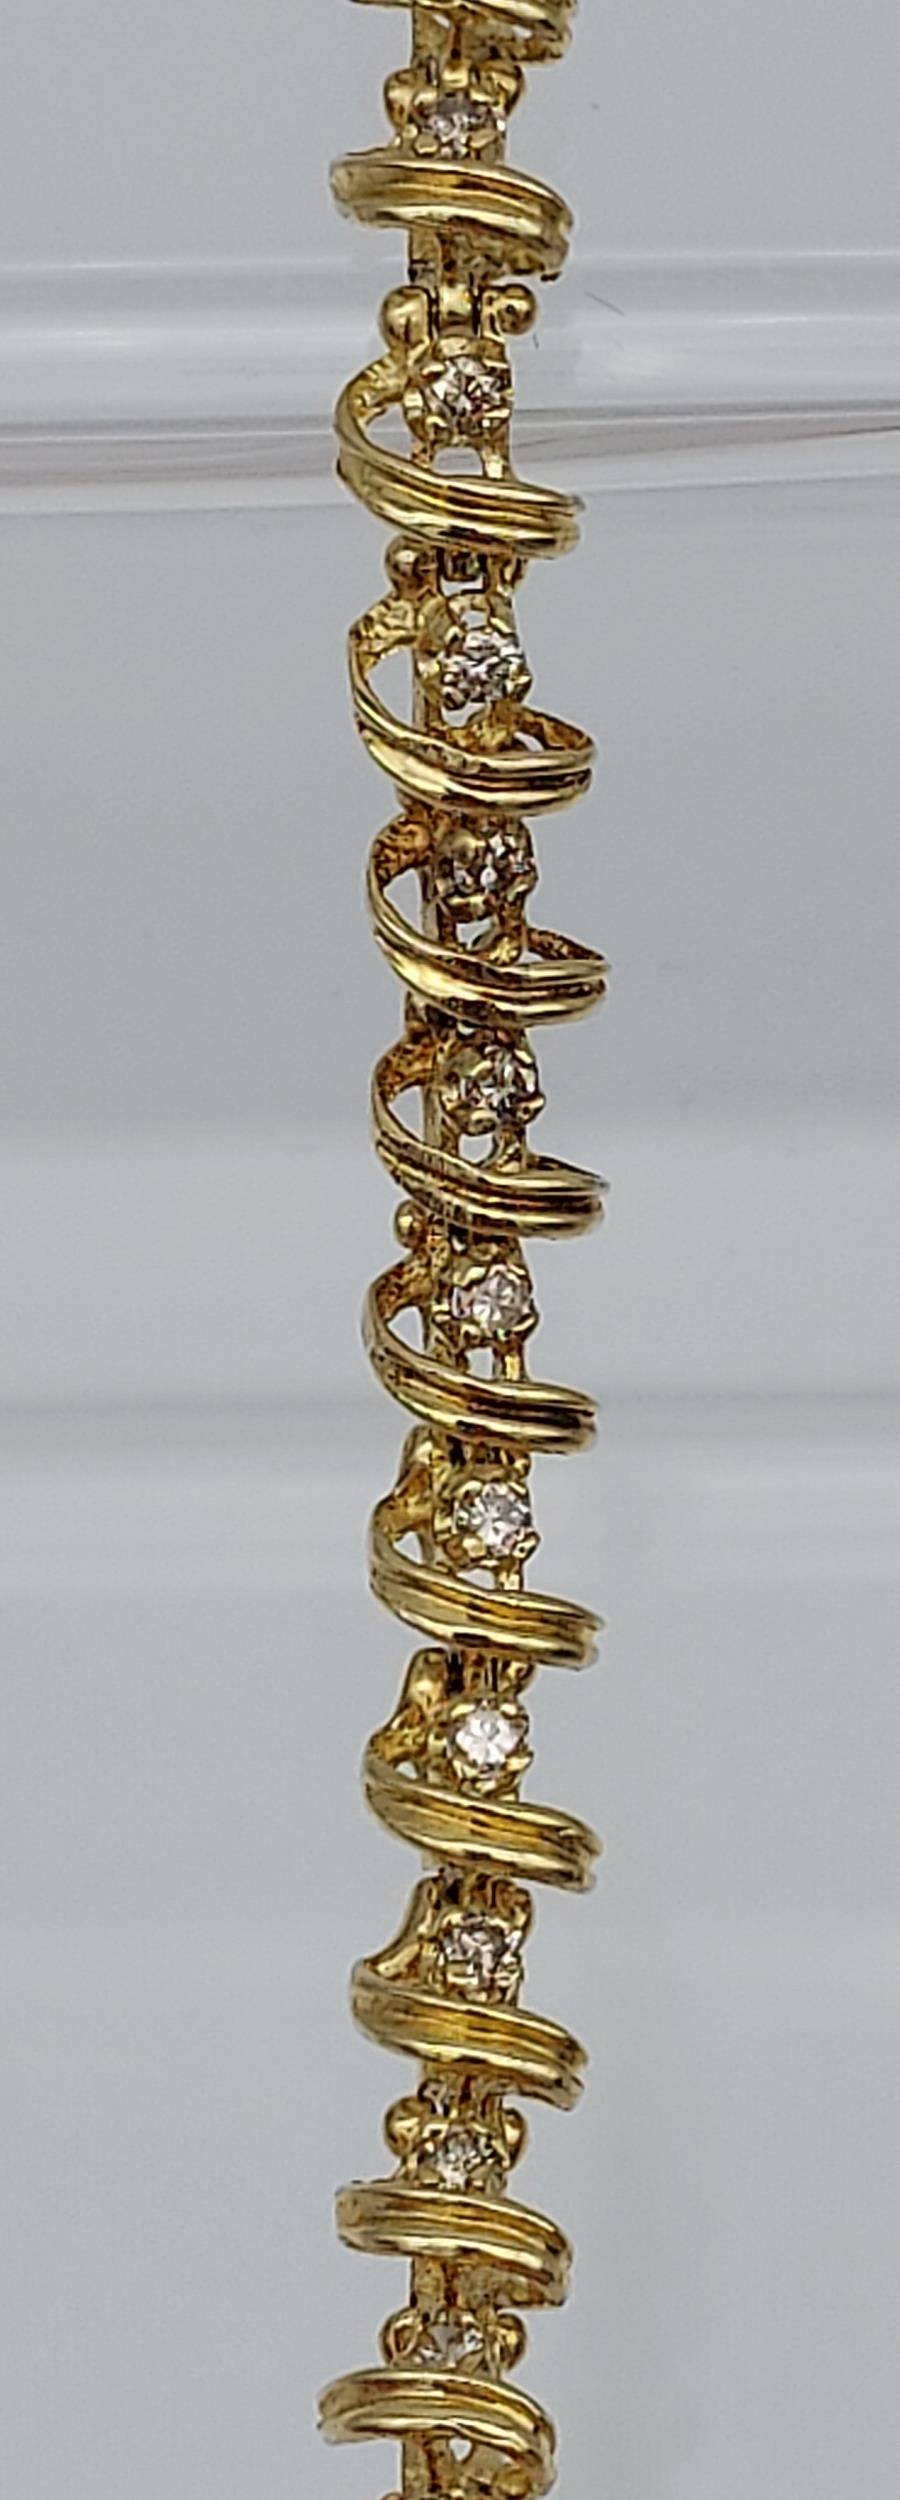 A 14ct yellow gold bracelet made up of 32 diamond panels [1ct approx] [9.58g] - Image 4 of 6